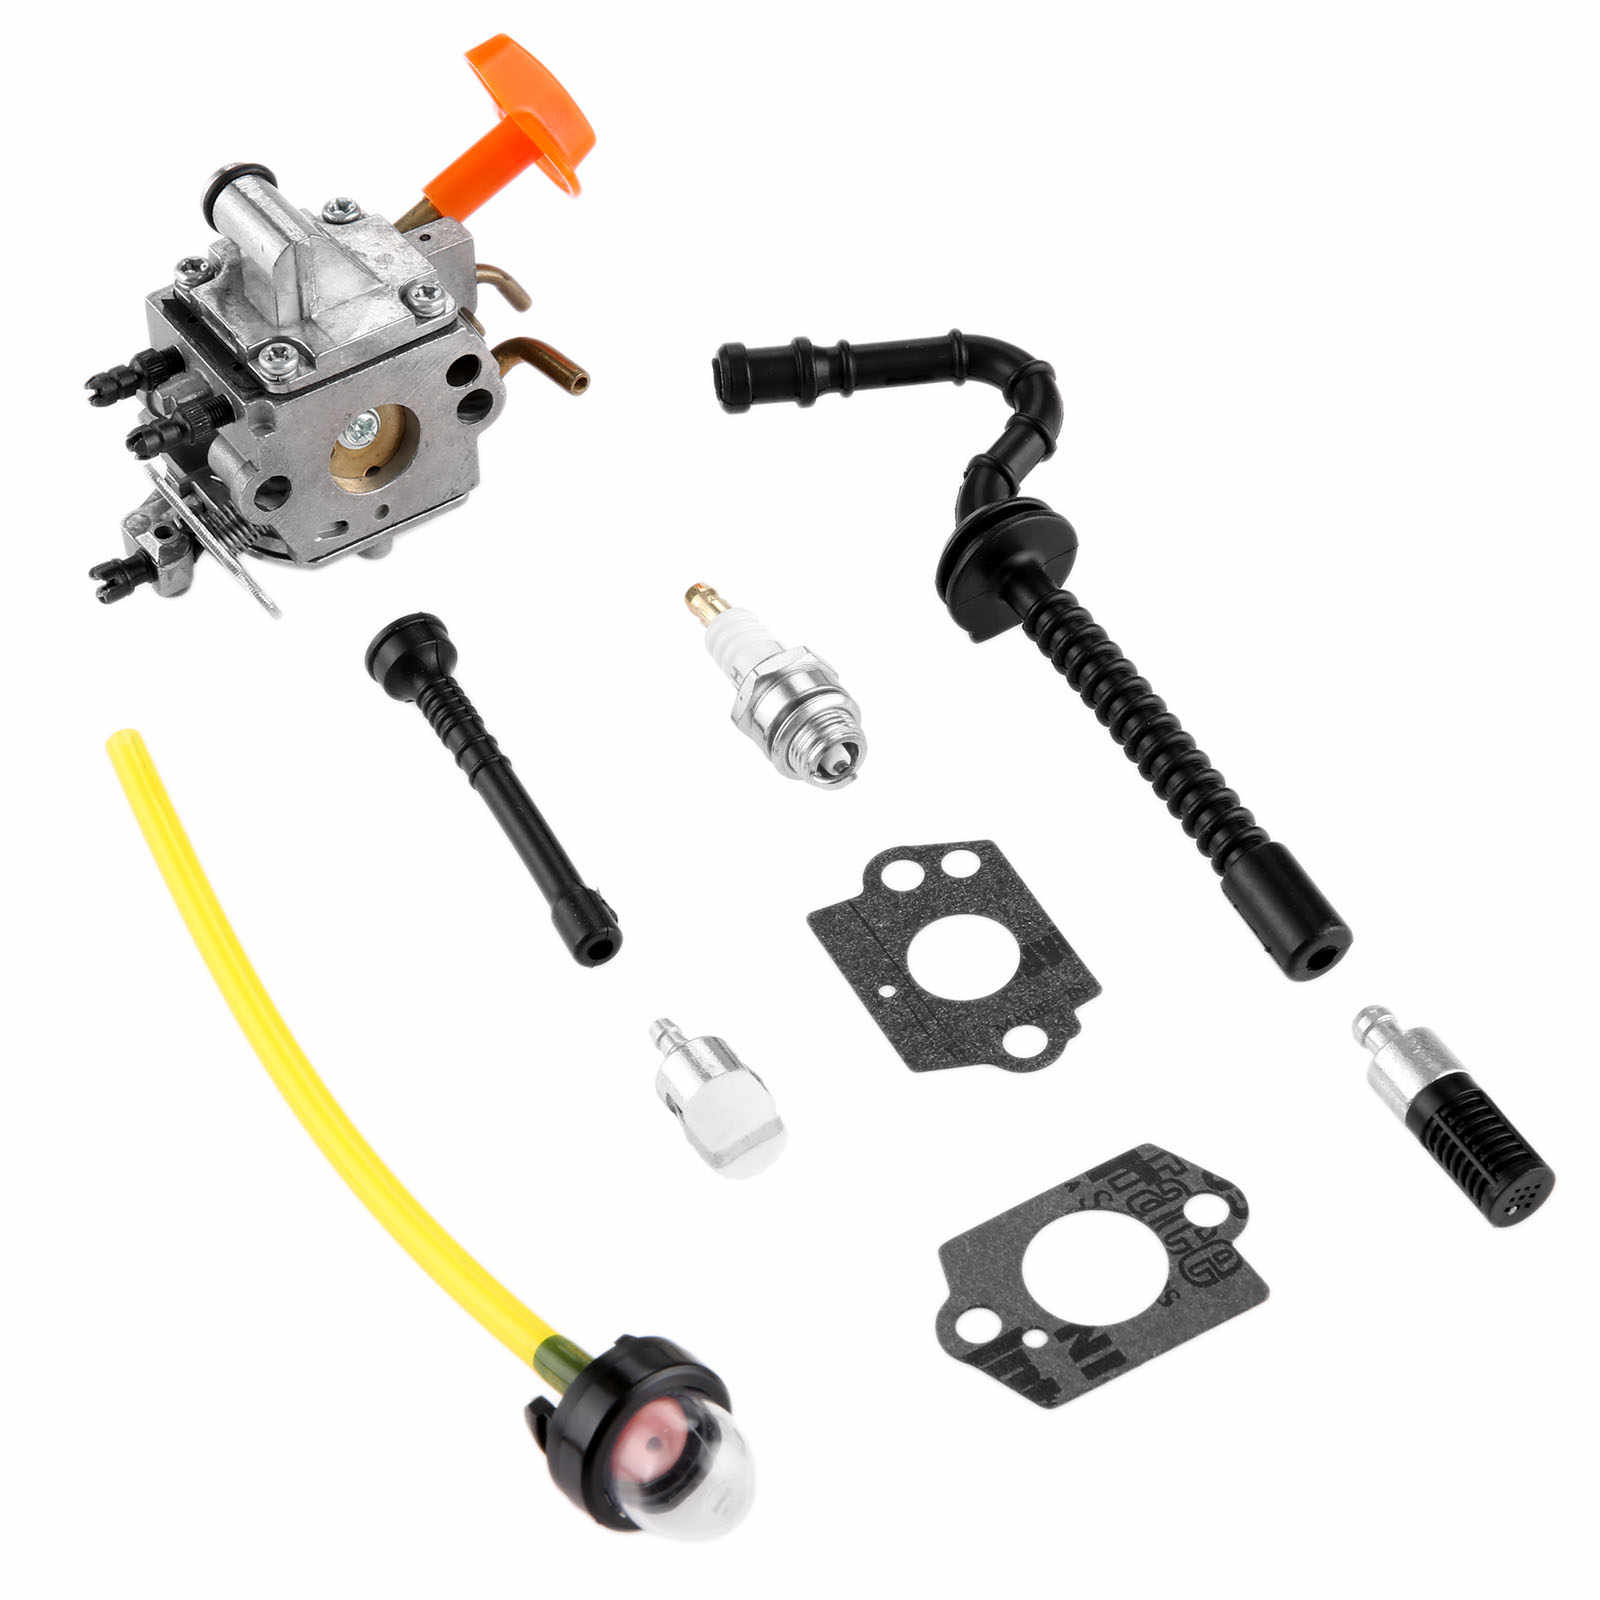 dreld carburetor carb for stihl ms192 ms192t ms192tc chainsaw zama c1q-s258  with gasket fuel